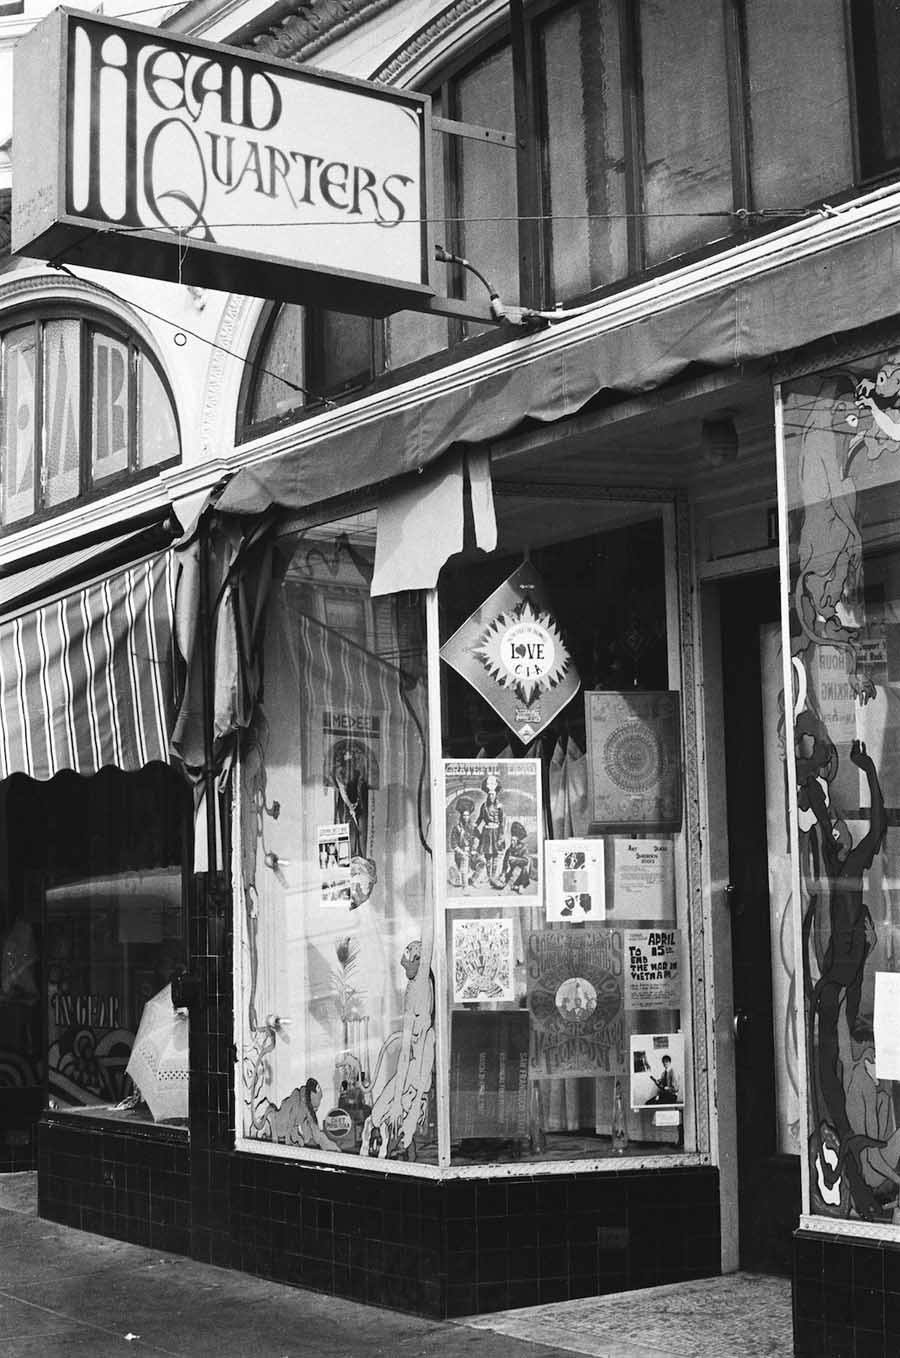 haight ashbury 1967 head quarters